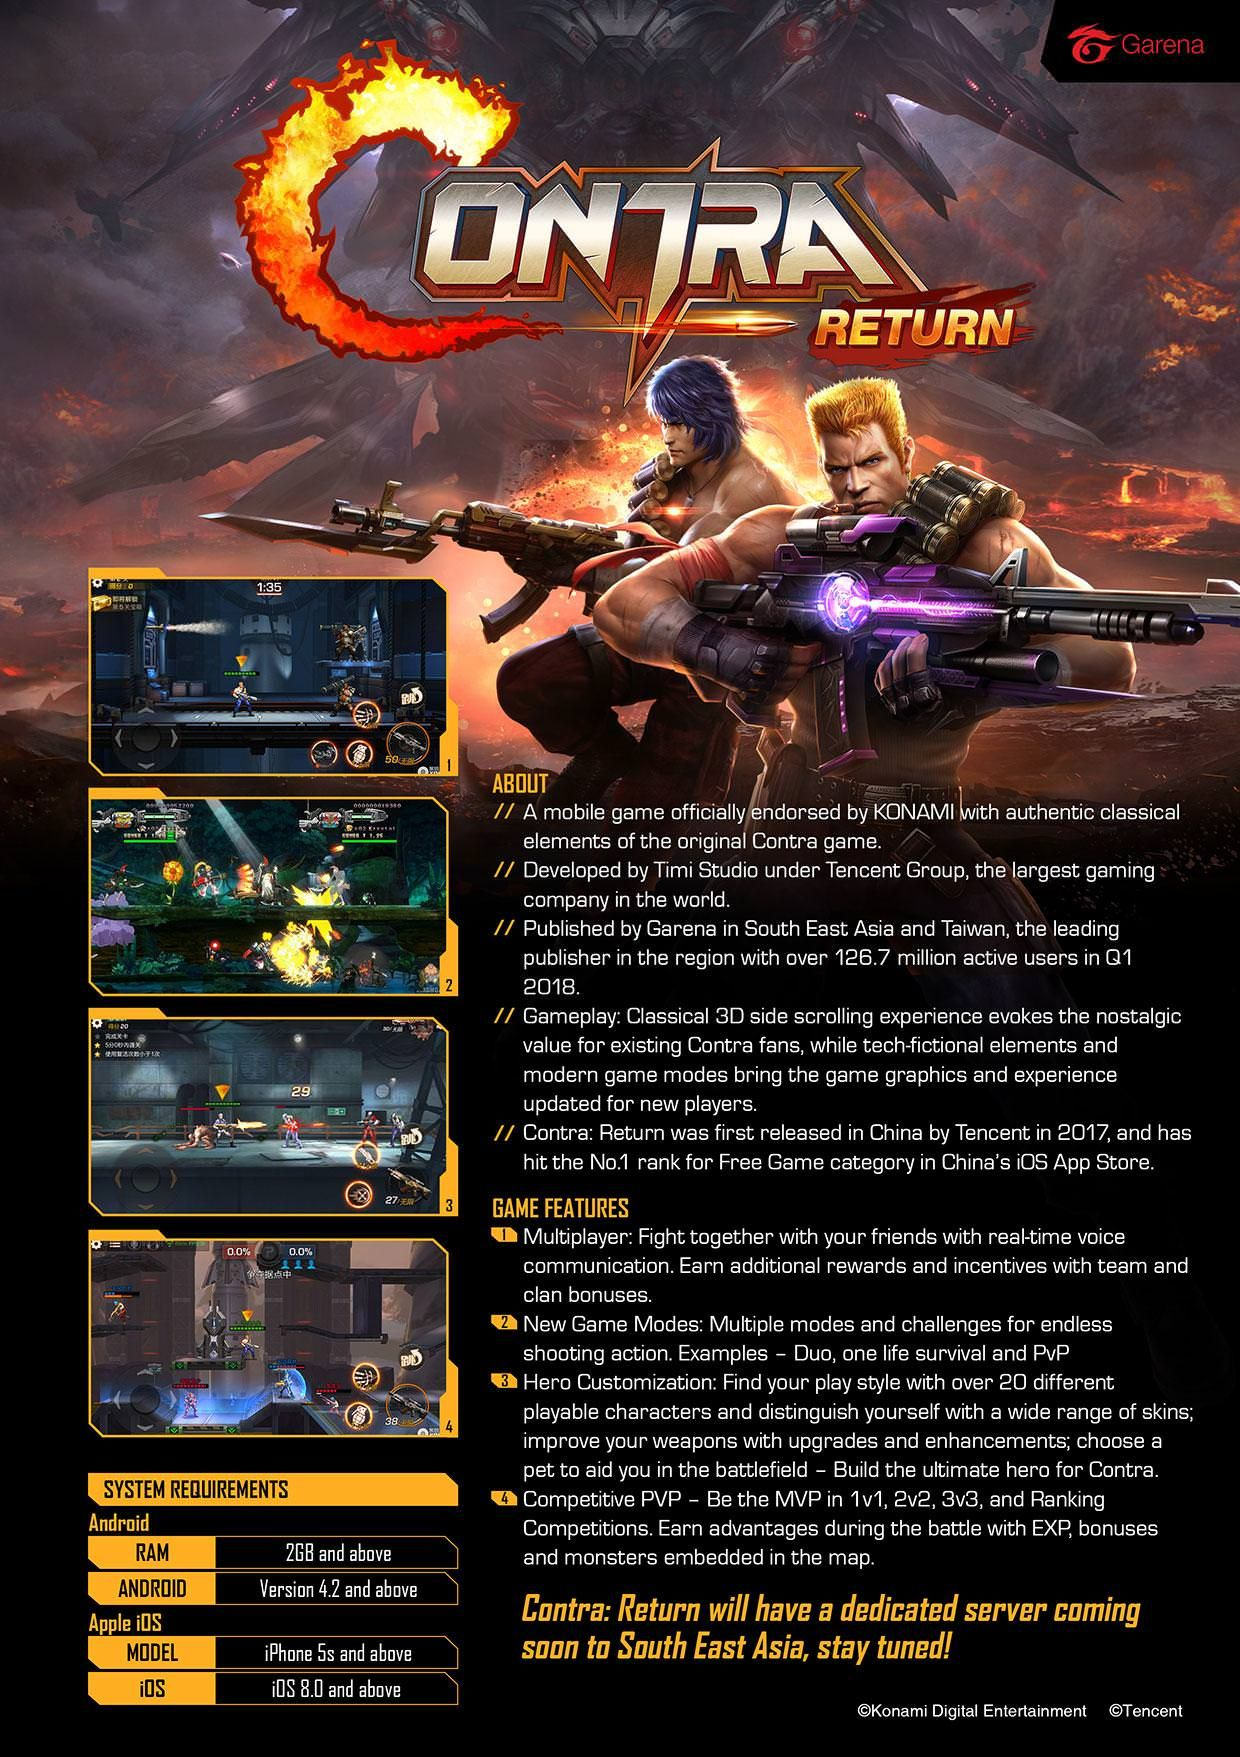 Contra Return debuts in South East Asia Mobile Game now